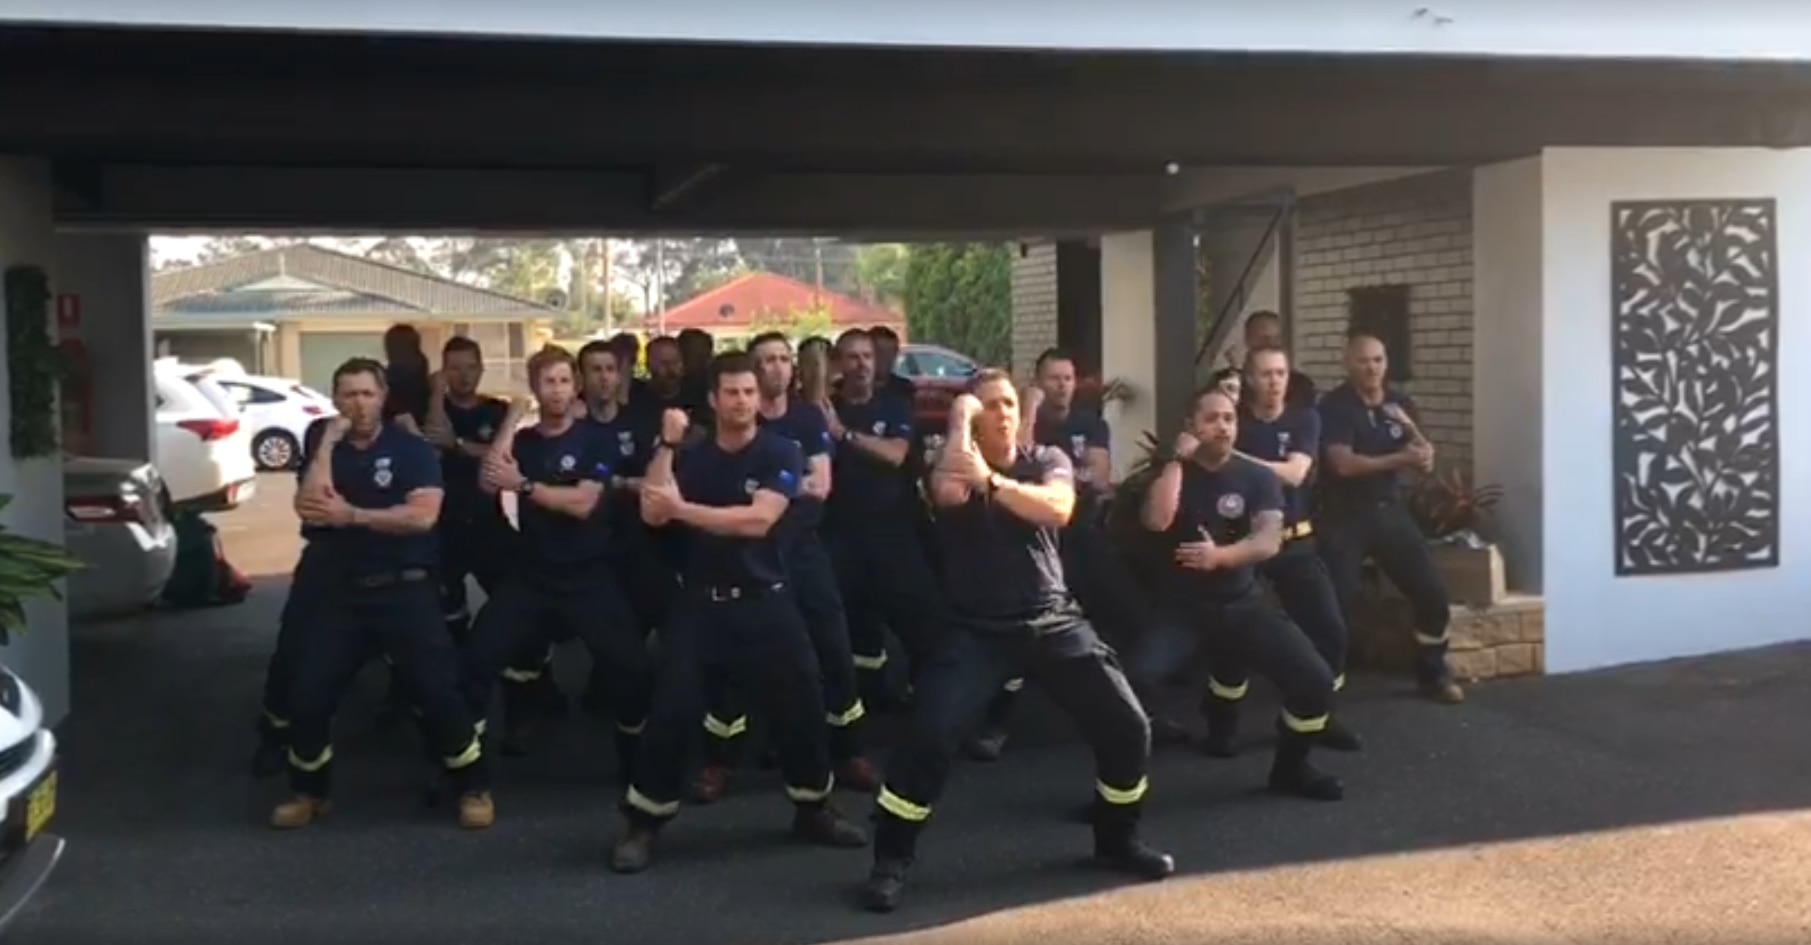 The New Zealand fire crew perform a traditional haka after spending three weeks fighting fires in NSW.